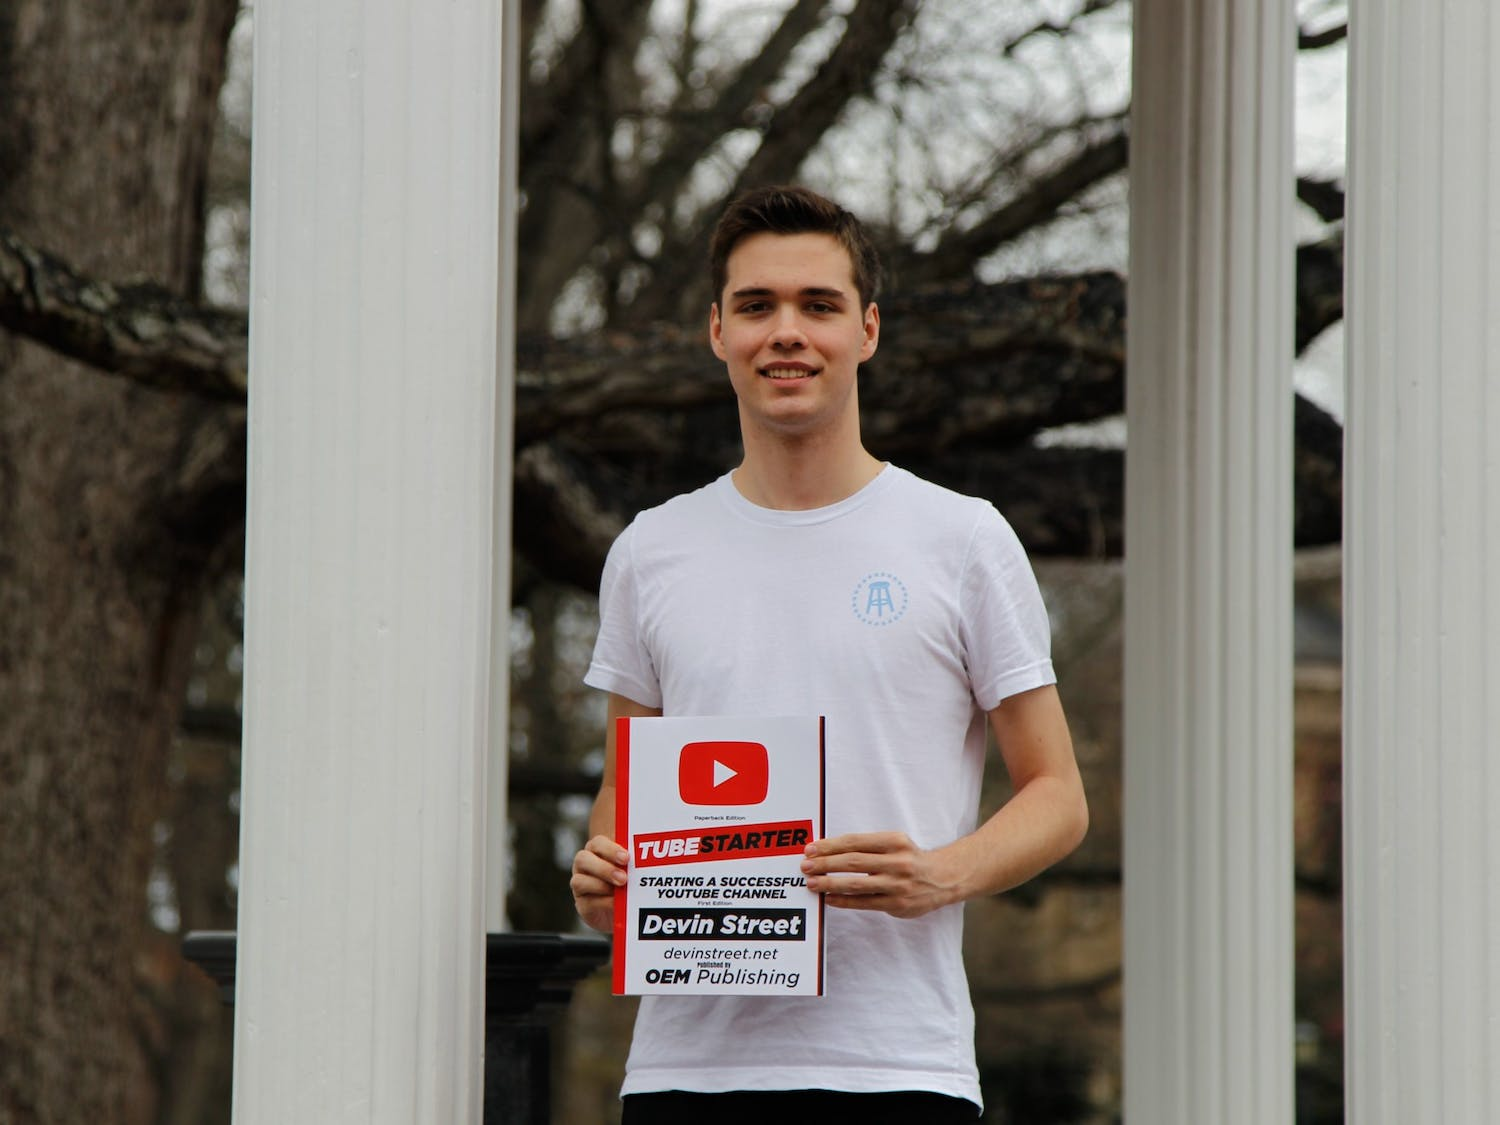 """Devin Street, a first-year business major, poses for a portrait at the Old Well with his book, TubeStarter: Starting A Successful YouTube Channel, on Wednesday, Feb. 26, 2020. Street says, """"The biggest privilege kids have today is the opportunity to do big things because of advancements in technology and the internet. Whether it's publishing a book or starting a business, it can all be done on a phone or laptop.""""."""